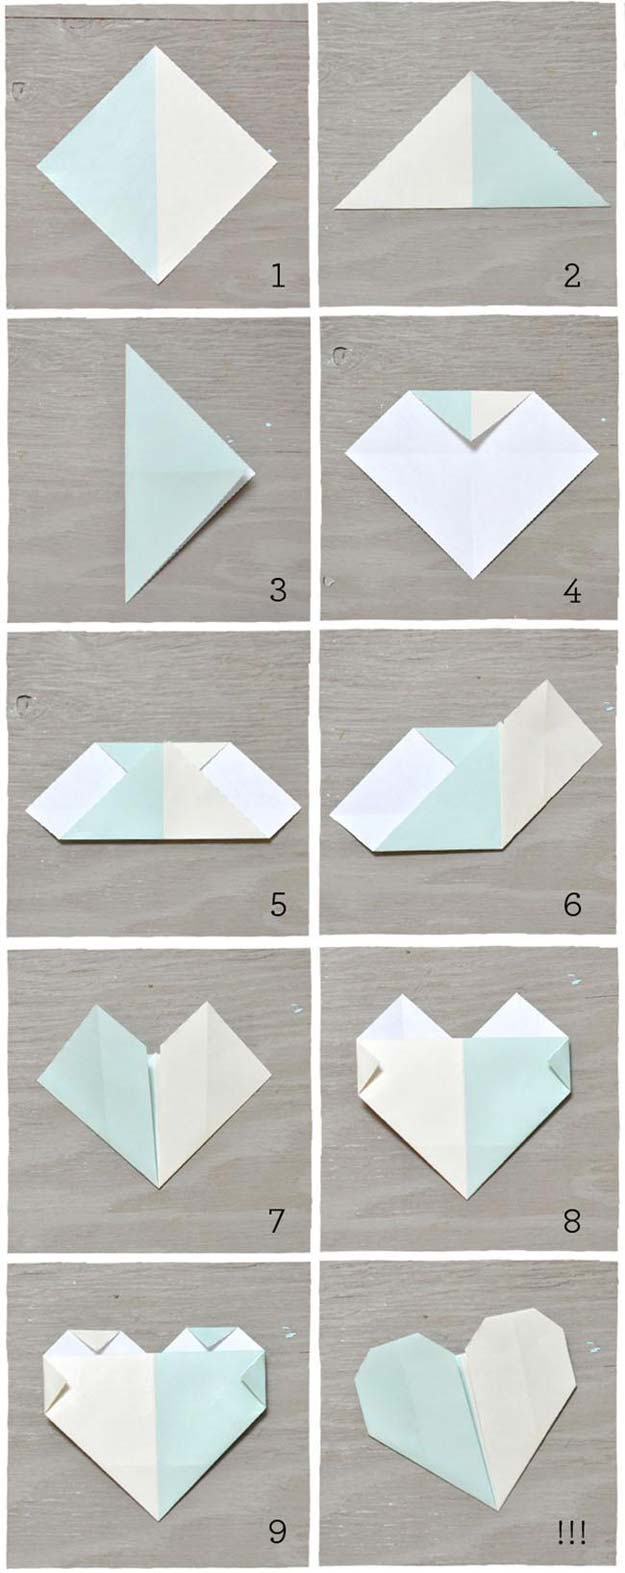 How To Make A Origami Dog Box